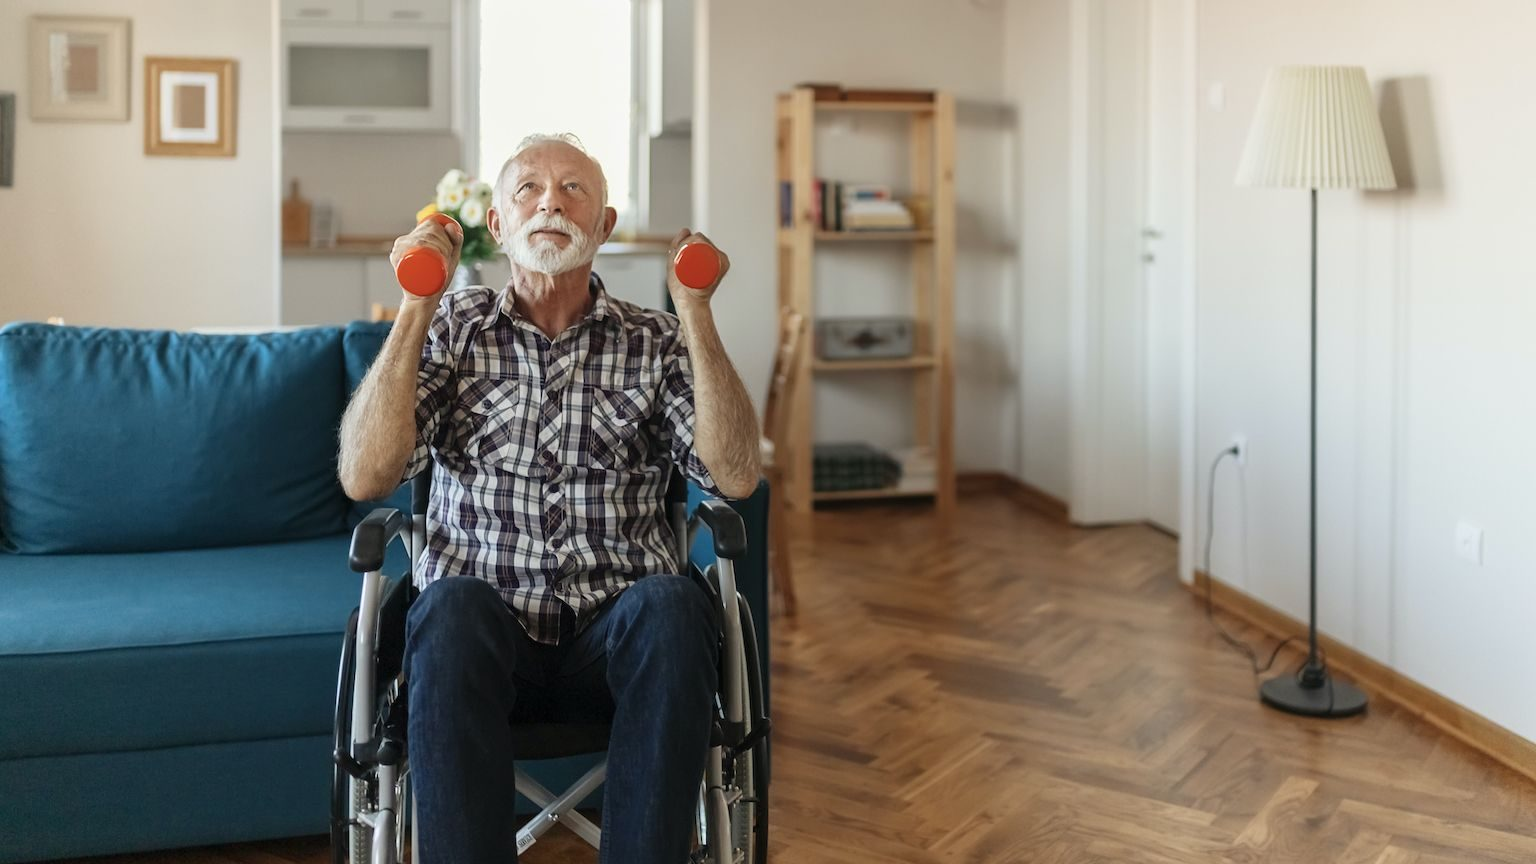 Older man in a wheelchair using weights to exercise